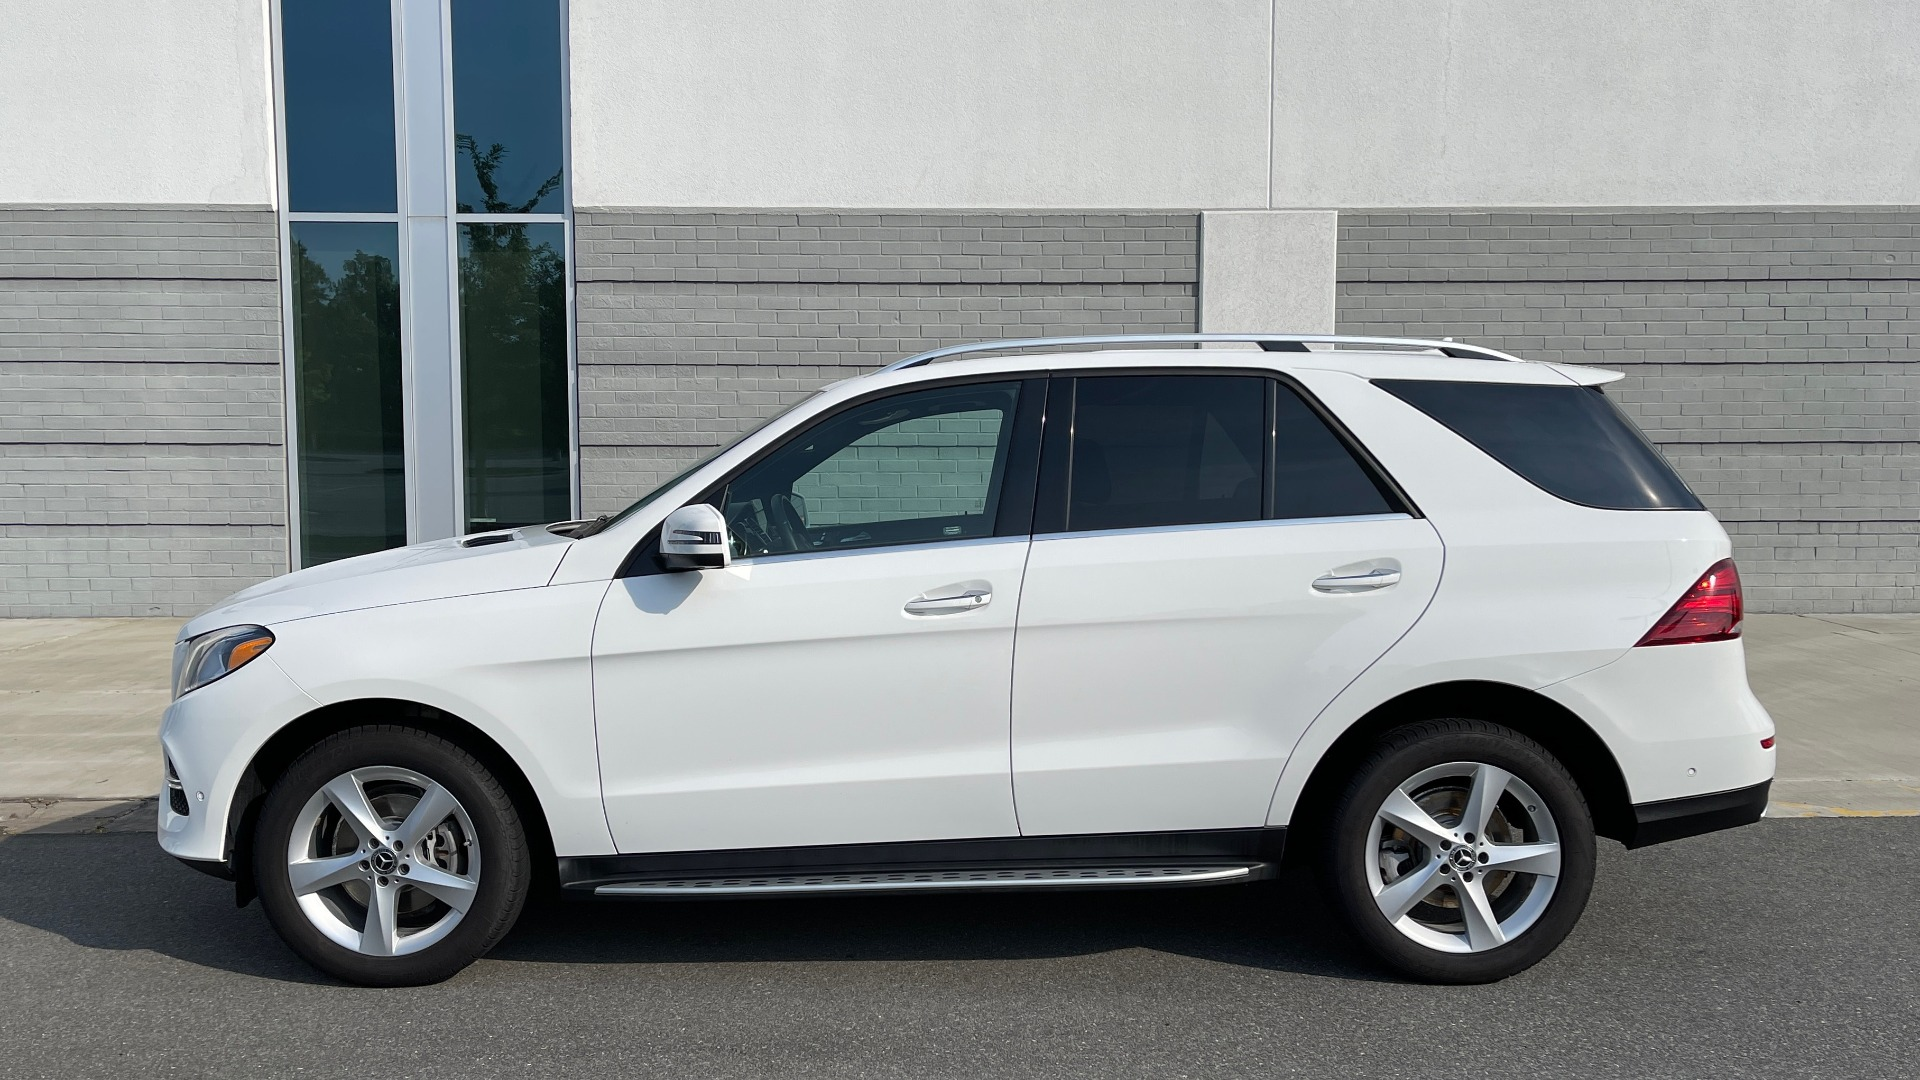 Used 2018 Mercedes-Benz GLE 350 4MATIC PREMIUM / NAV / SUNROOF / HTD STS / TRAILER HITCH / REARVIEW for sale $36,295 at Formula Imports in Charlotte NC 28227 4